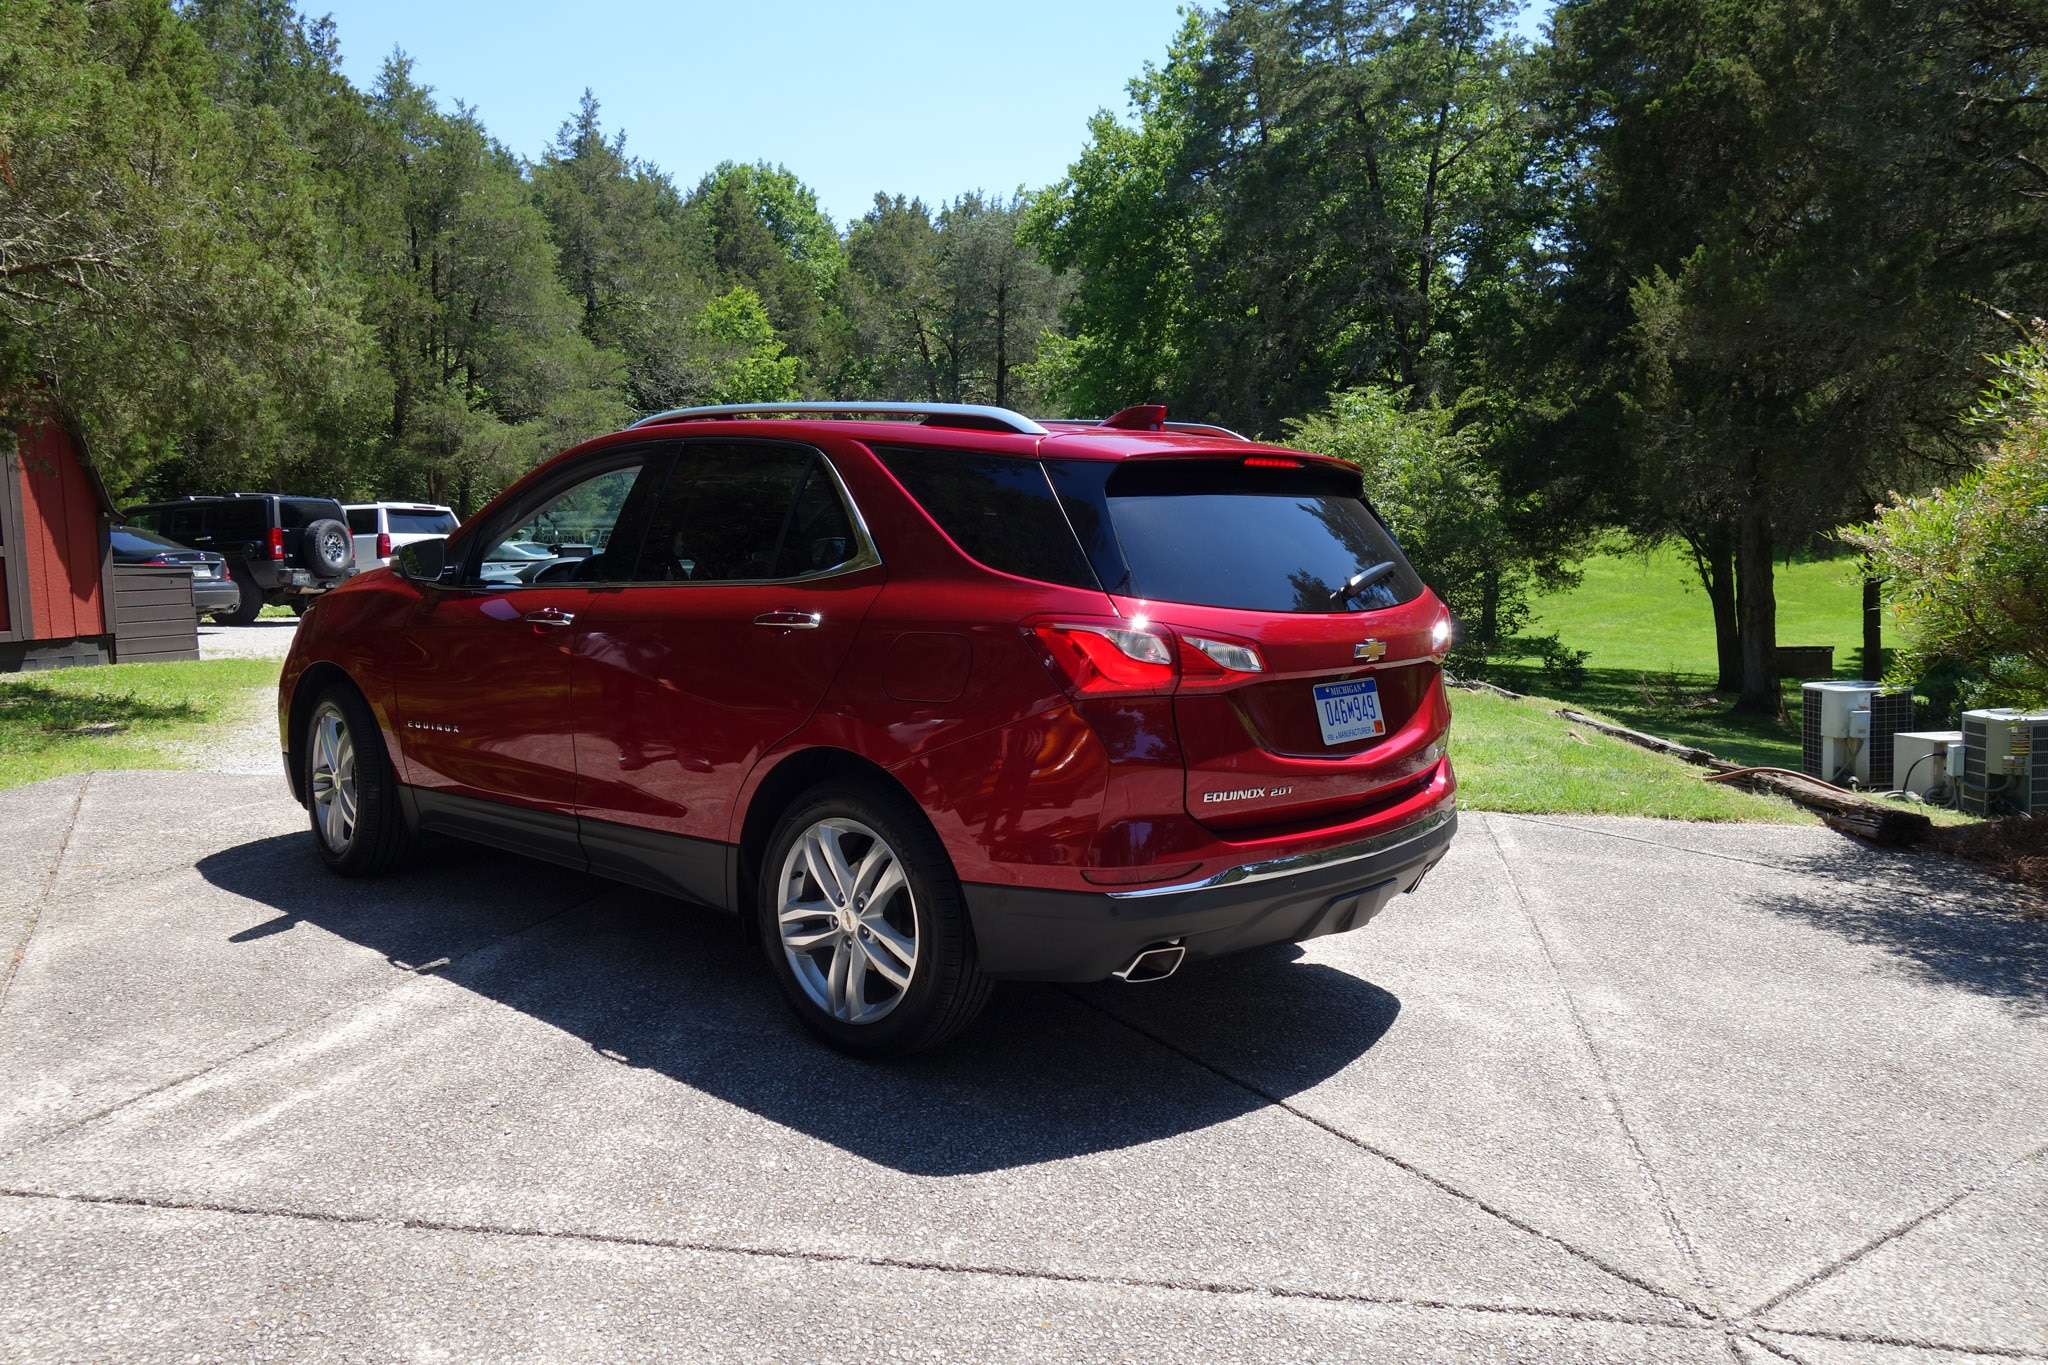 Back to Back: 2018 Chevrolet Equinox 2 0T AWD Premier and 1 5T FWD